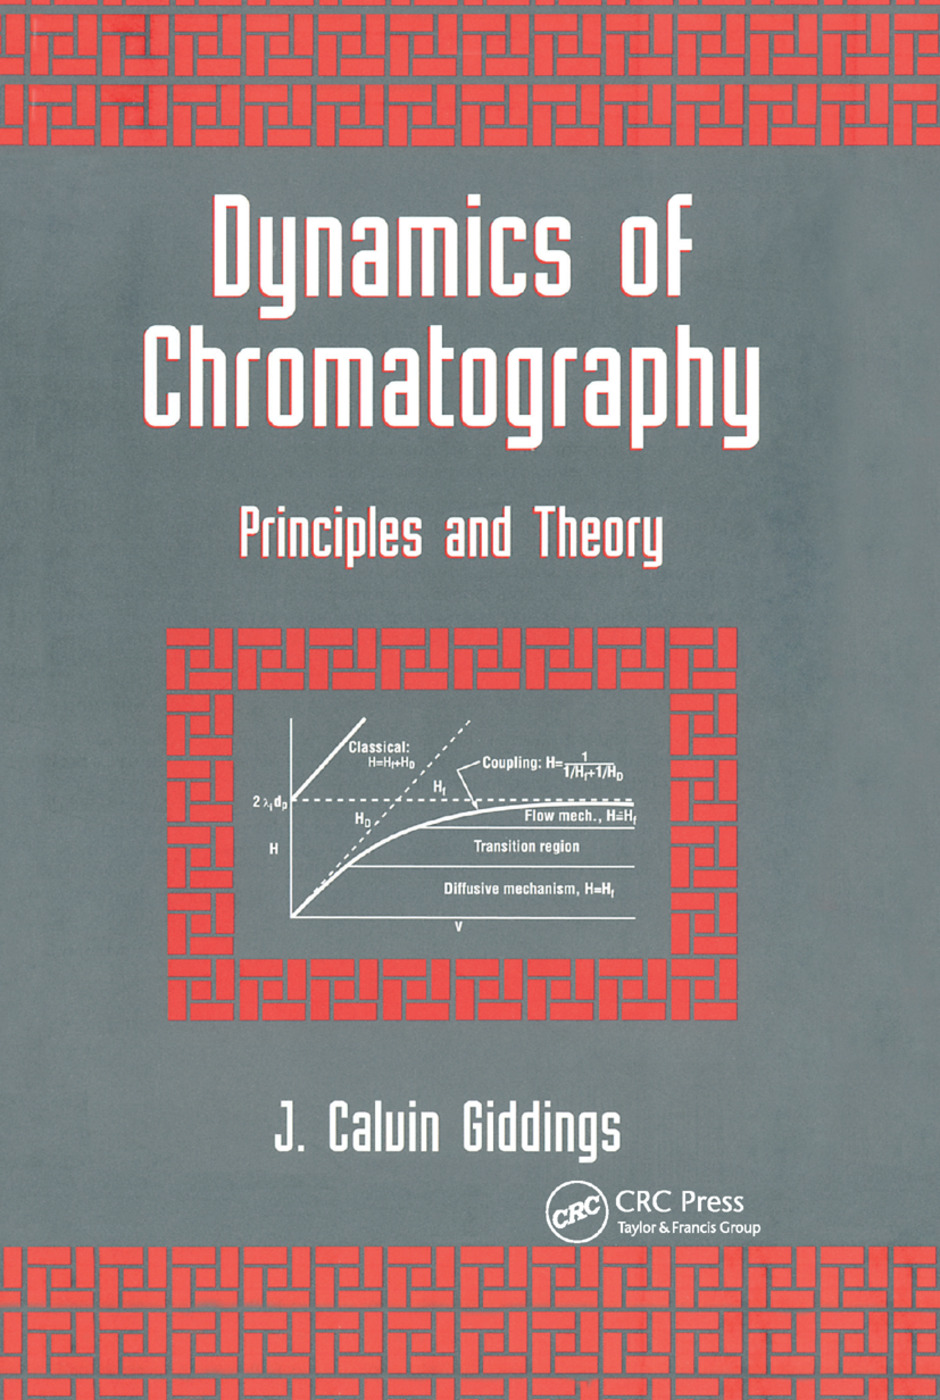 Dynamics of Chromatography Principles and Theory